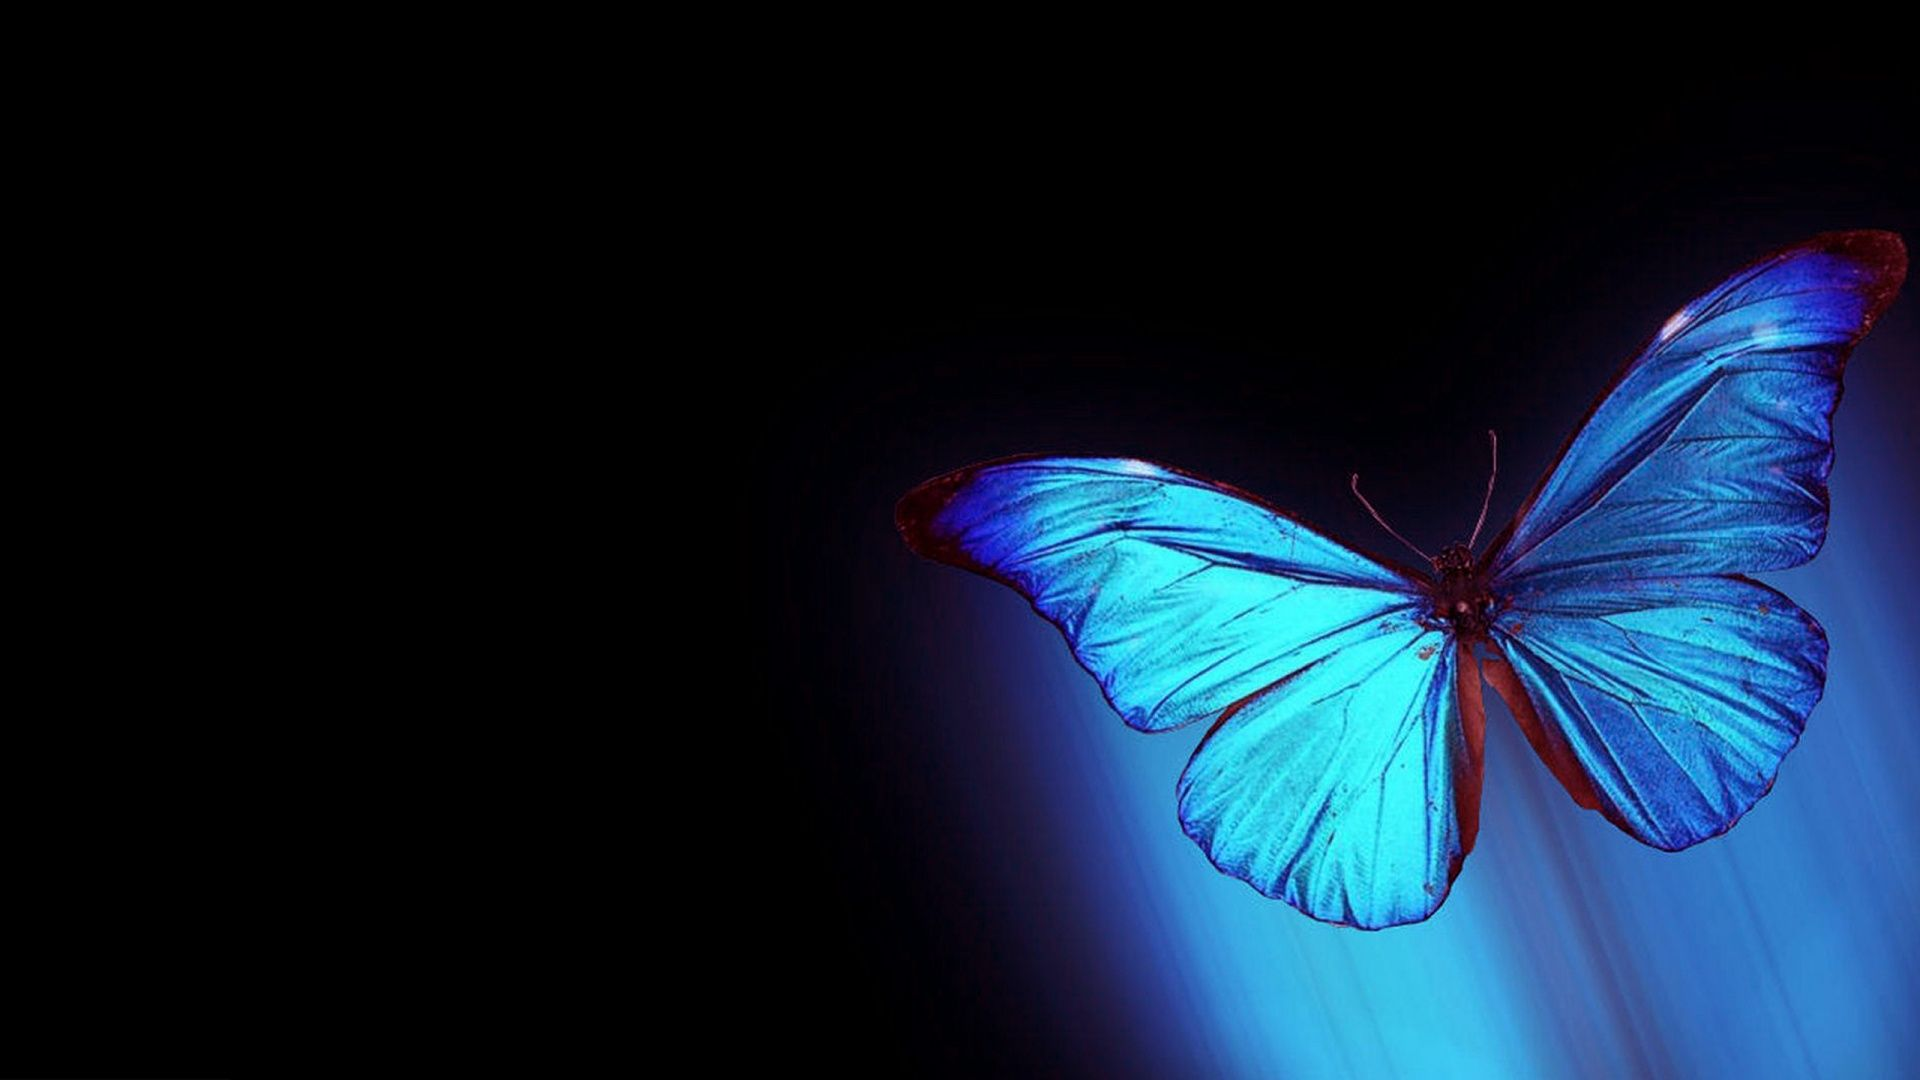 Animated Butterfly Hd Wallpapers Top Free Animated Butterfly Hd Backgrounds Wallpaperaccess